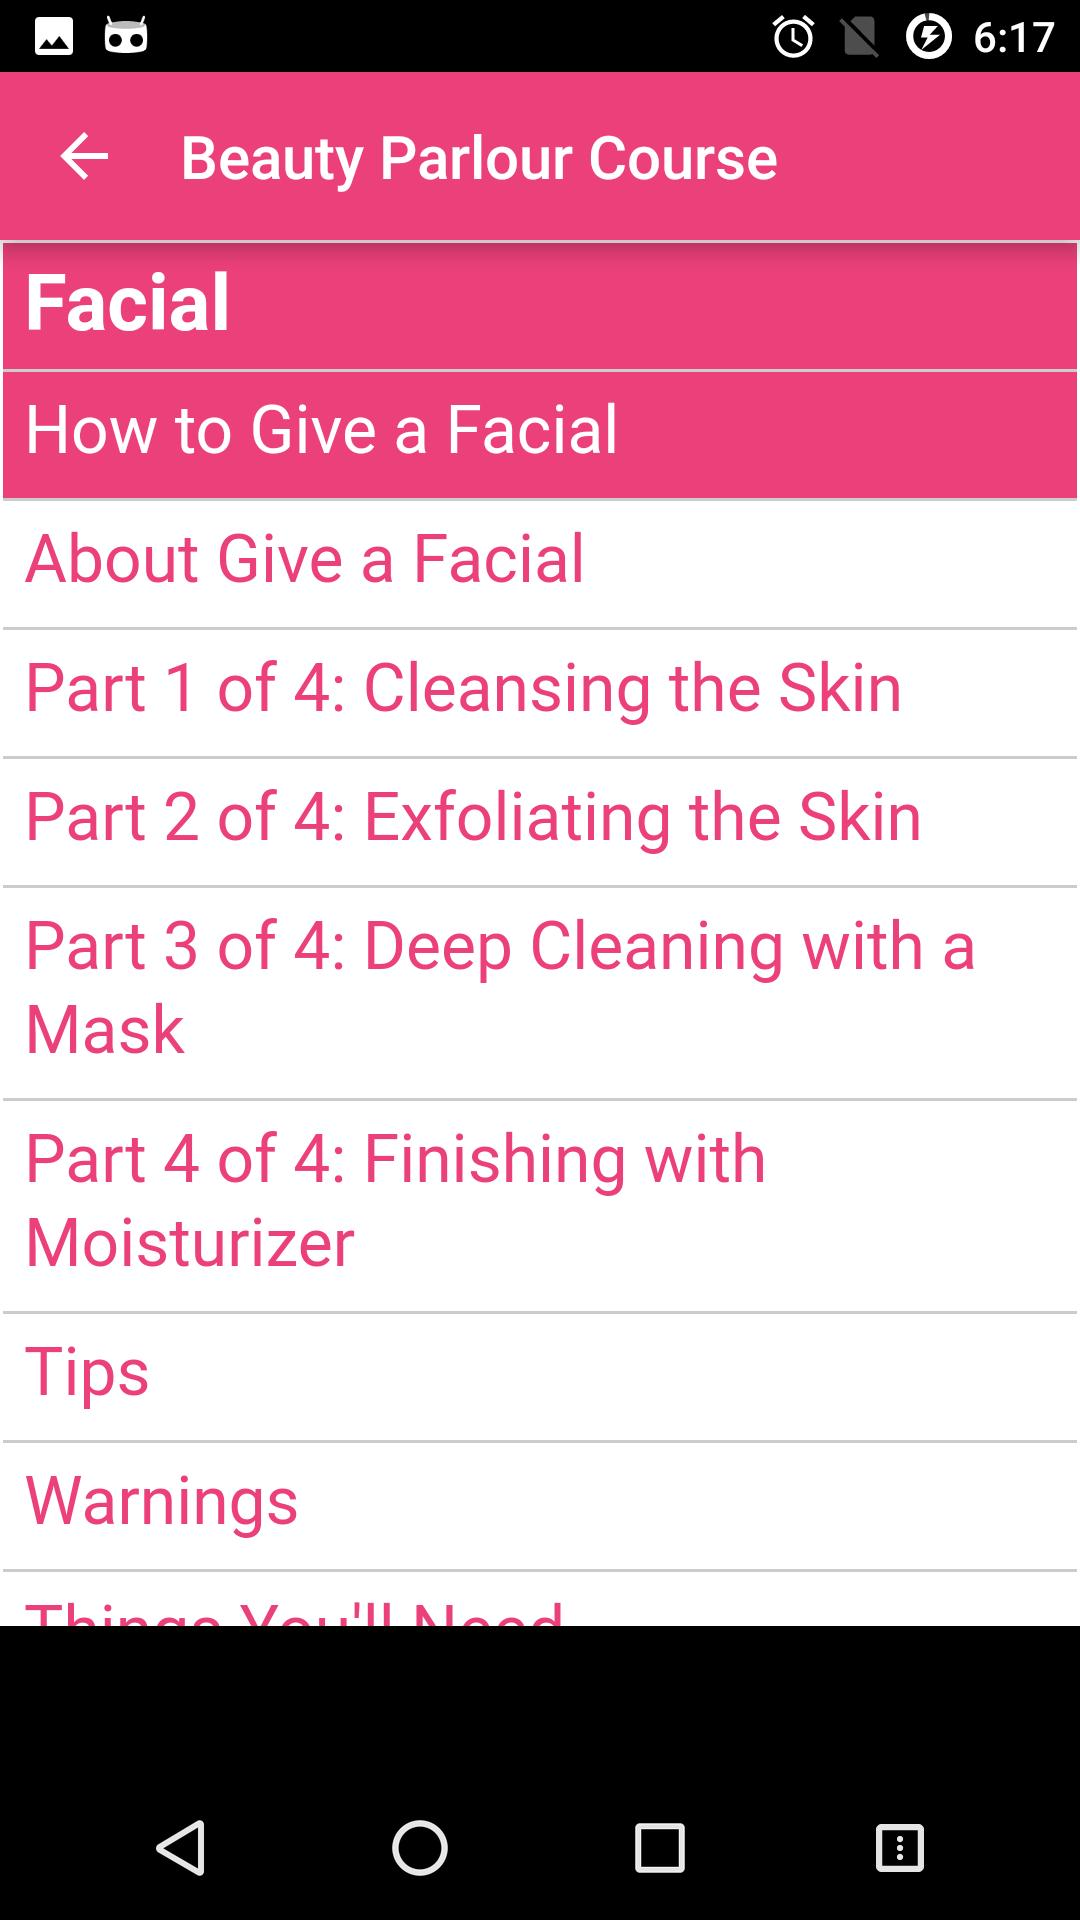 Beauty Parlour Course for Android - APK Download